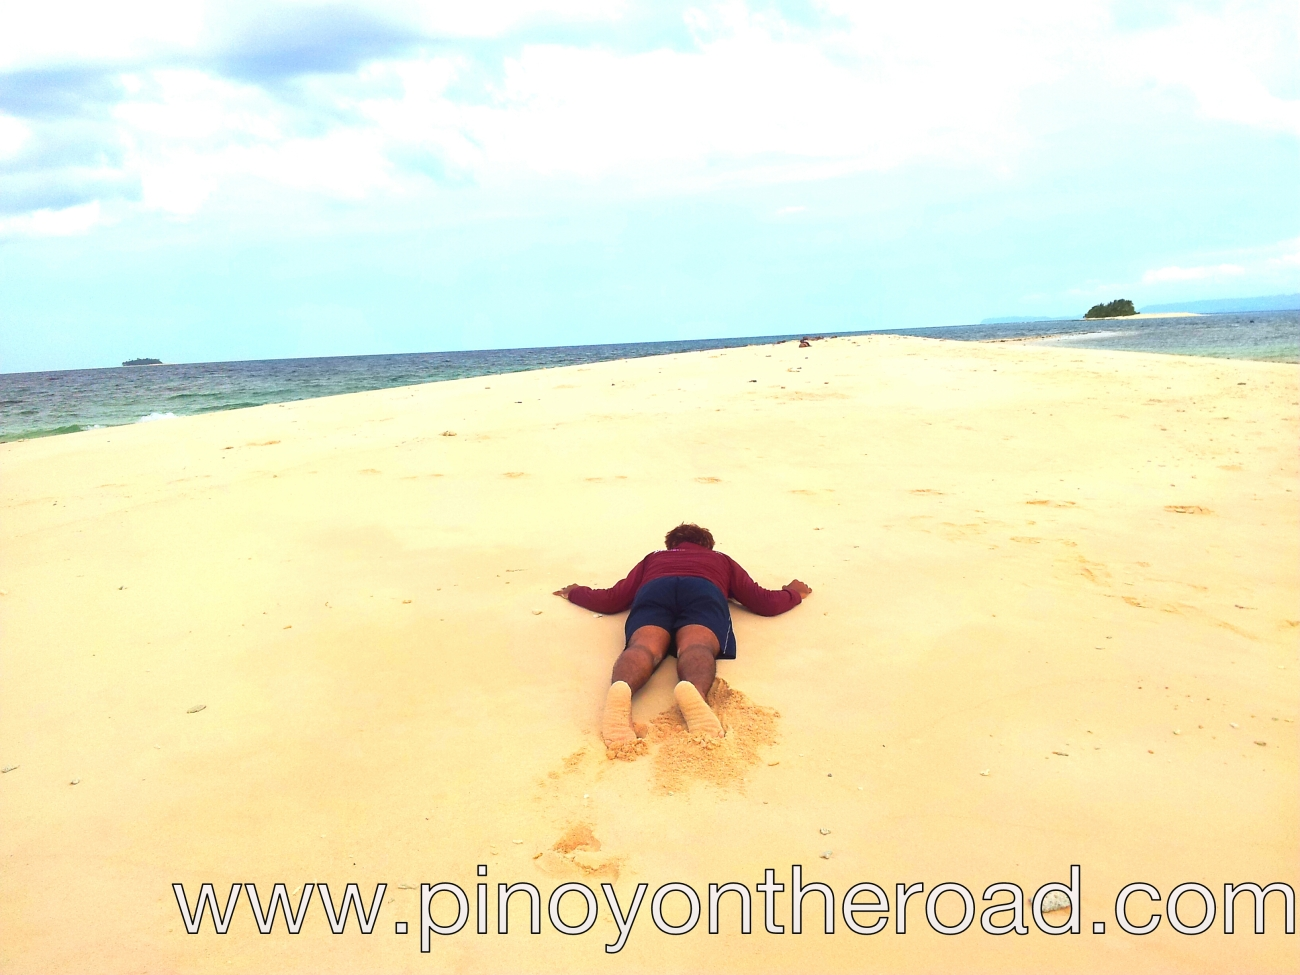 planking, more fun in the philippines